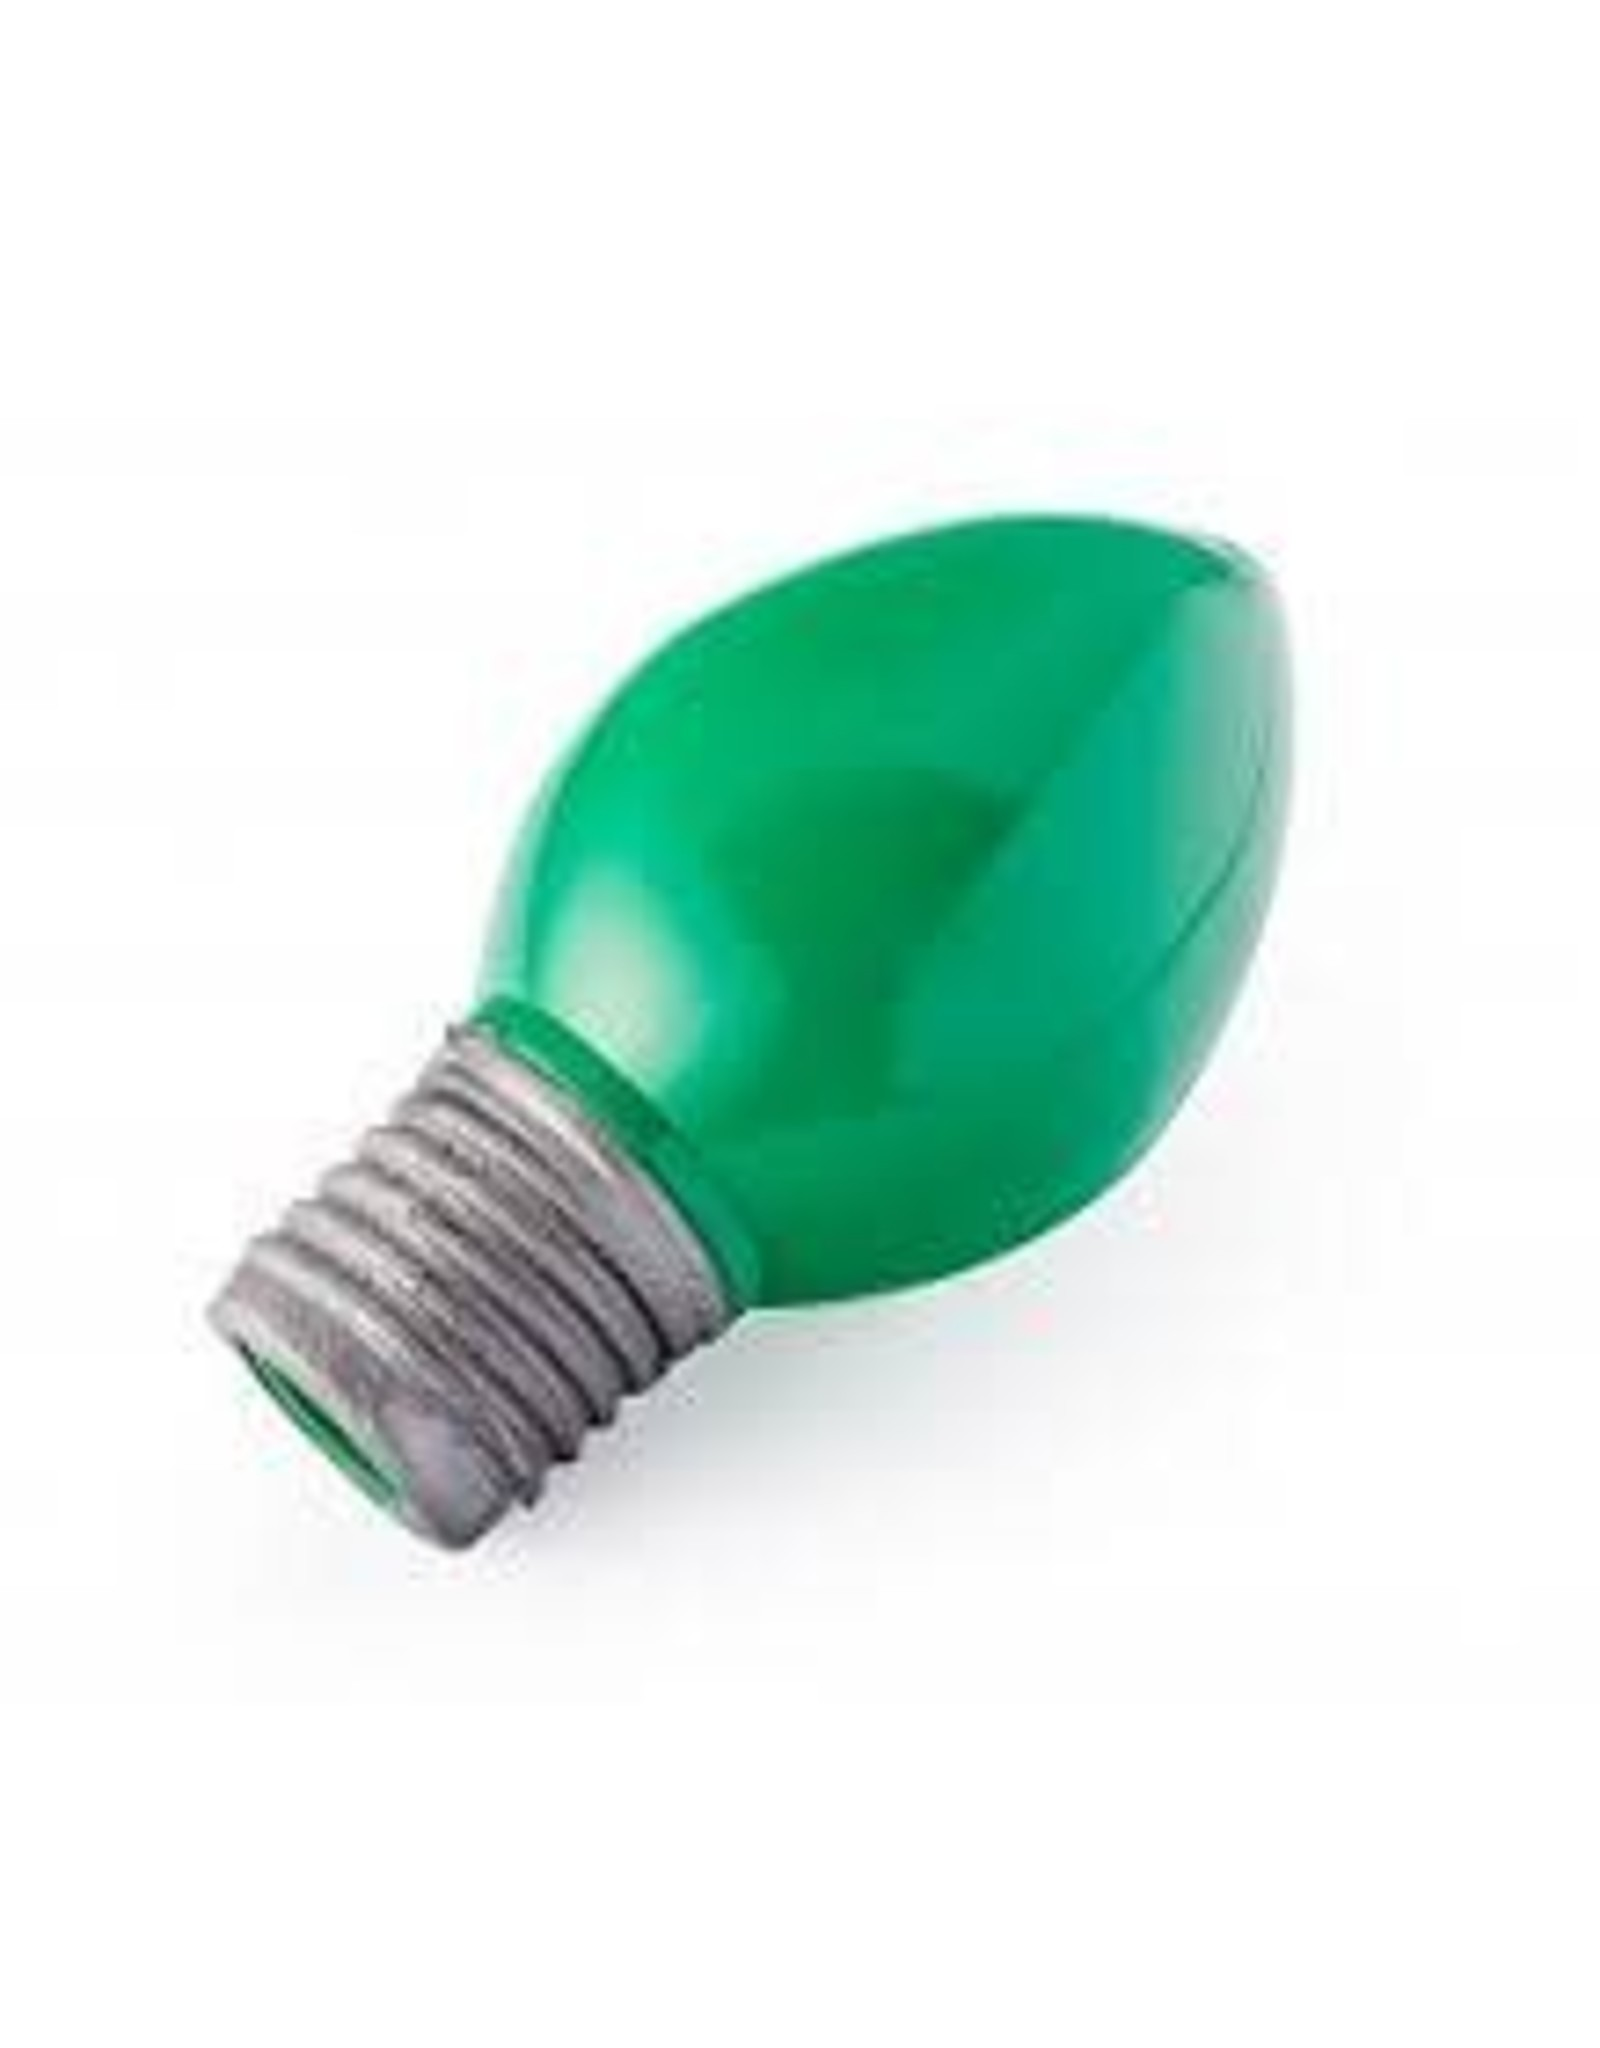 PLANET DOG PLANET DOG BULB GREEN 6IN